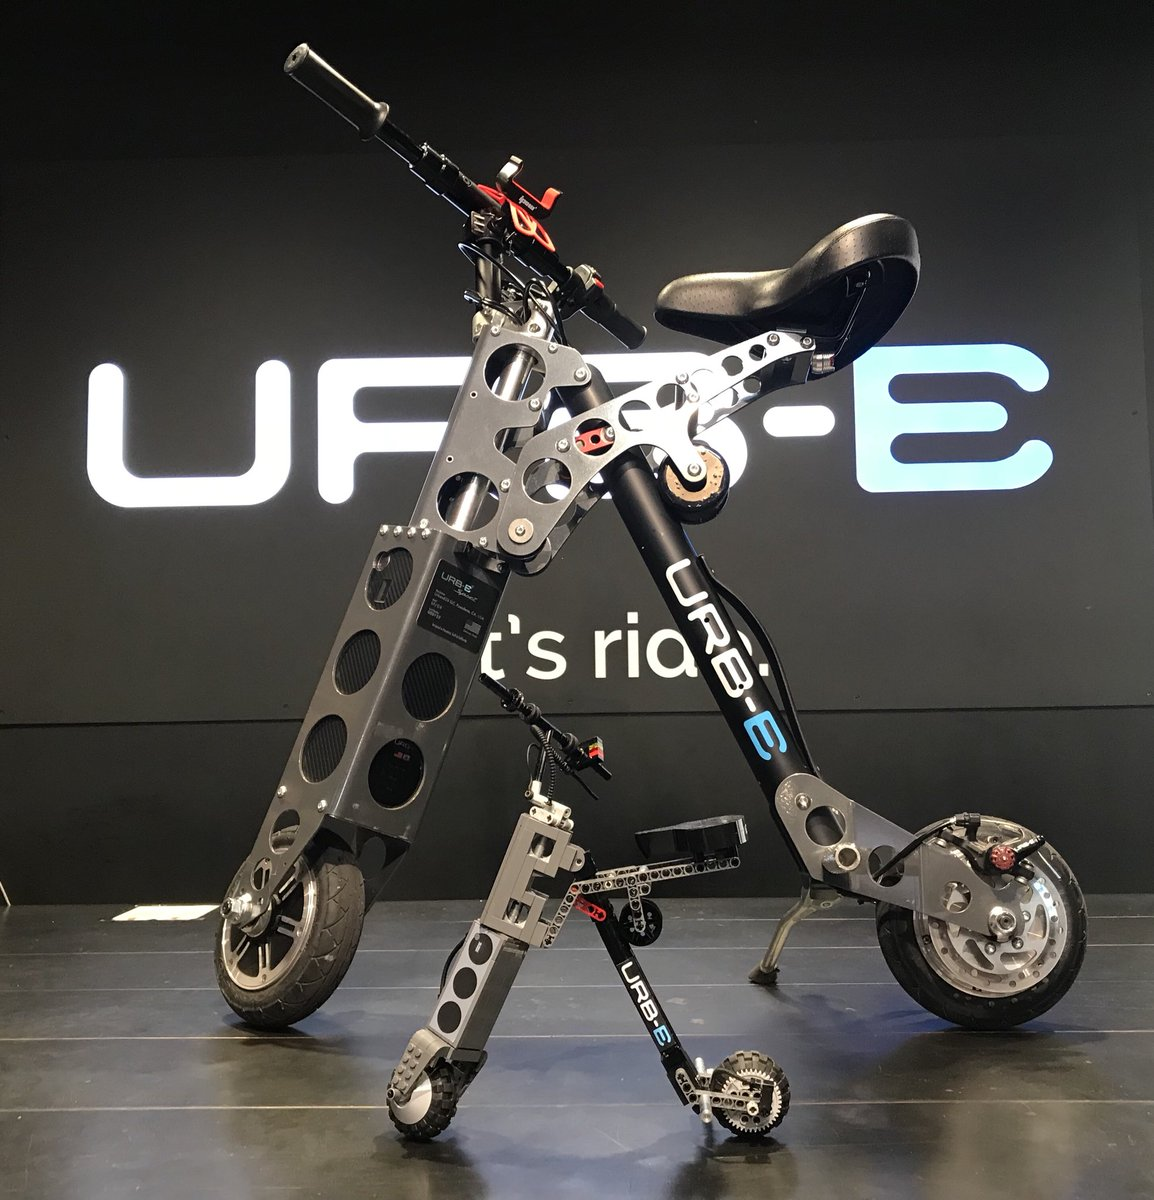 Urb E Designed In Pasadena Ca Changing The Short Distance Ride With Solidworks Solidworksiseverywherepic Twitter Kvfuzkqhhr